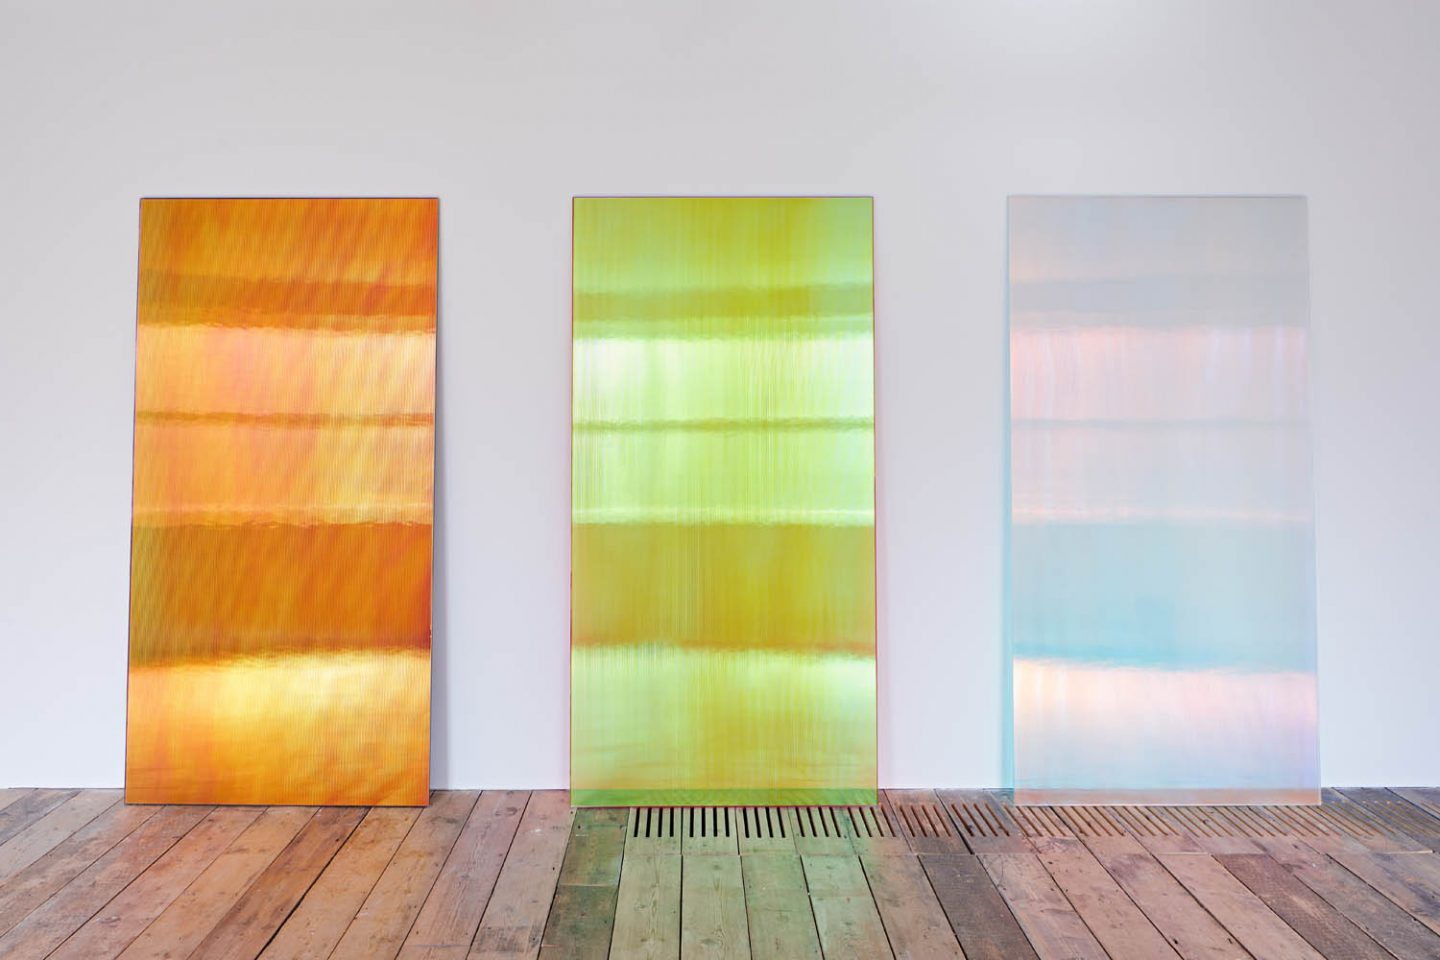 Ann Veronica Janssens at the South London Gallery Installation view ofCL2BK, 2015;Pinky Sunset R, 2019; andCL2 Blue Shadow, 2015 (left to right) Photo: Andy Stagg